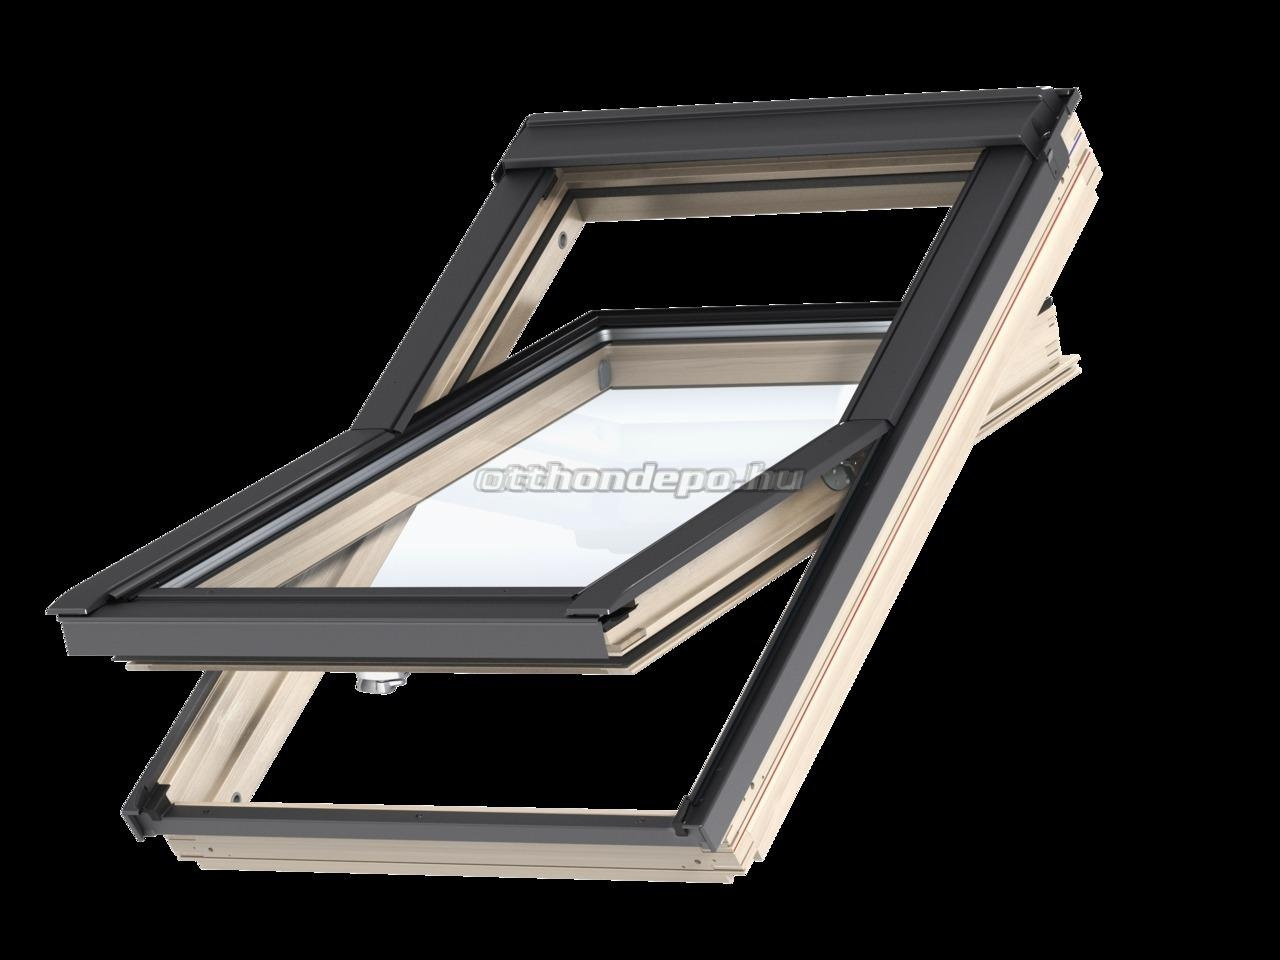 velux tet t ri ablak gzl mk08 1051 b 78 140 otthon depo web ruh z. Black Bedroom Furniture Sets. Home Design Ideas